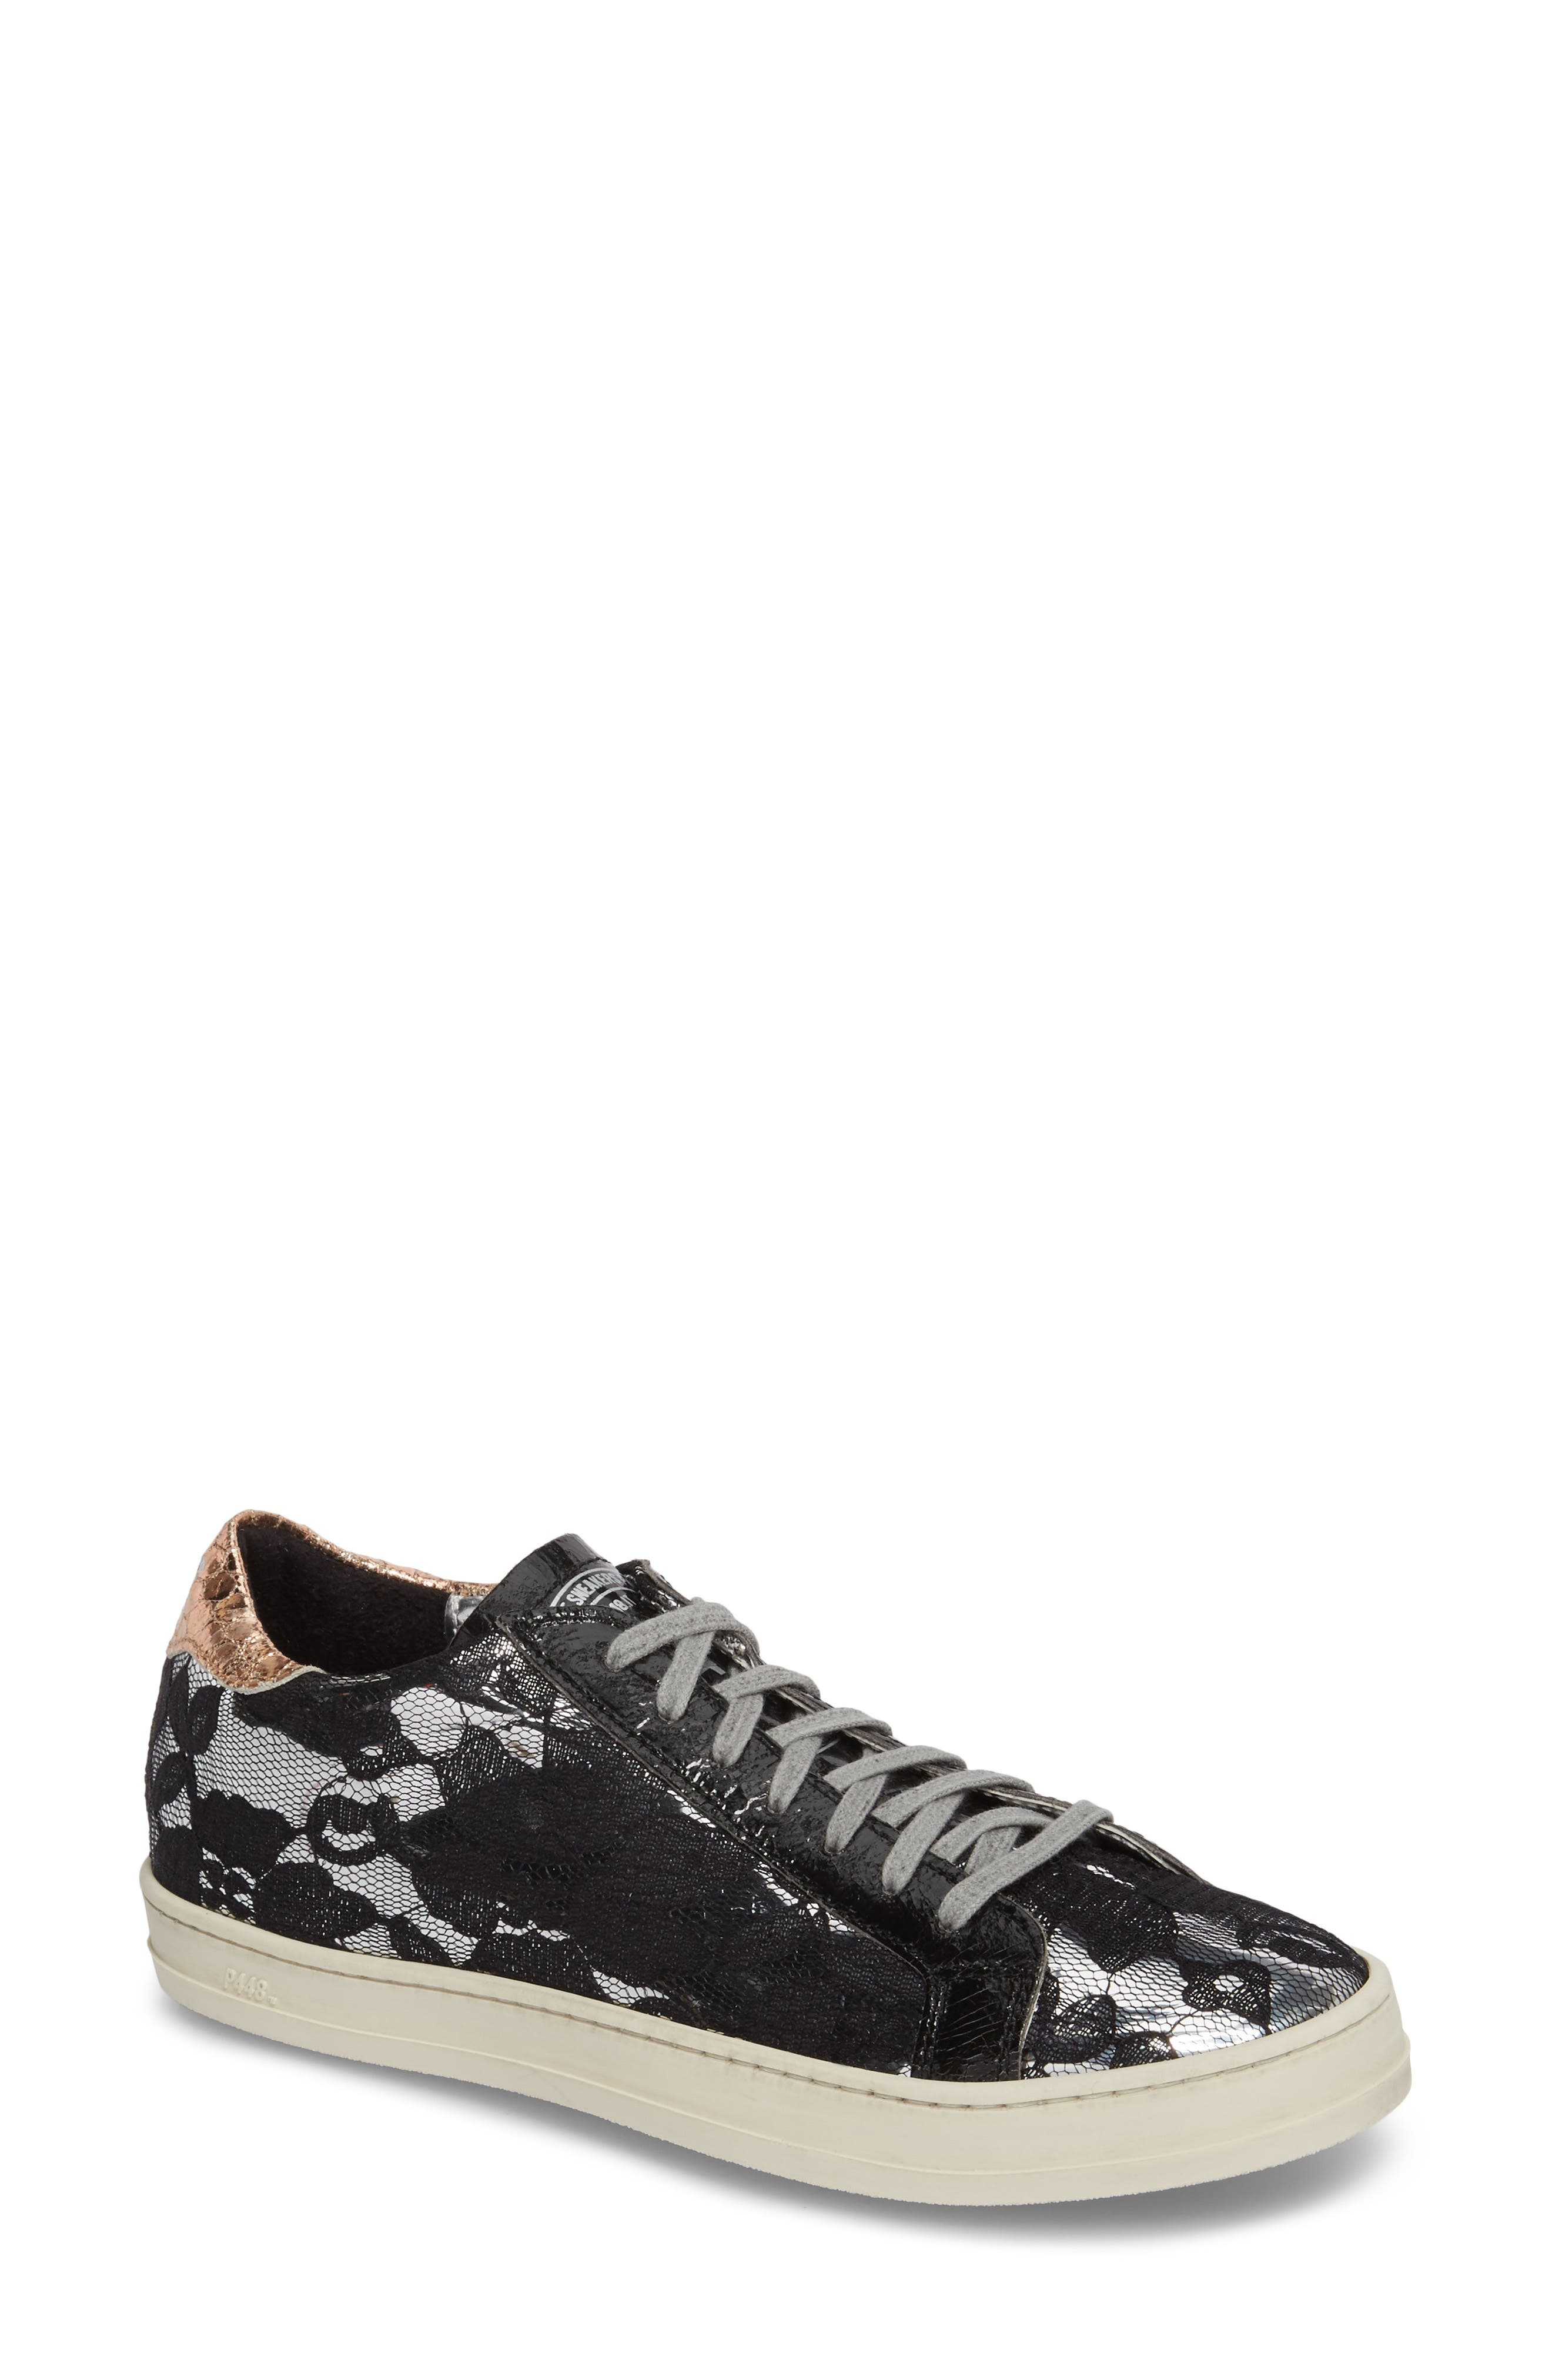 John Sneaker,                         Main,                         color, 002